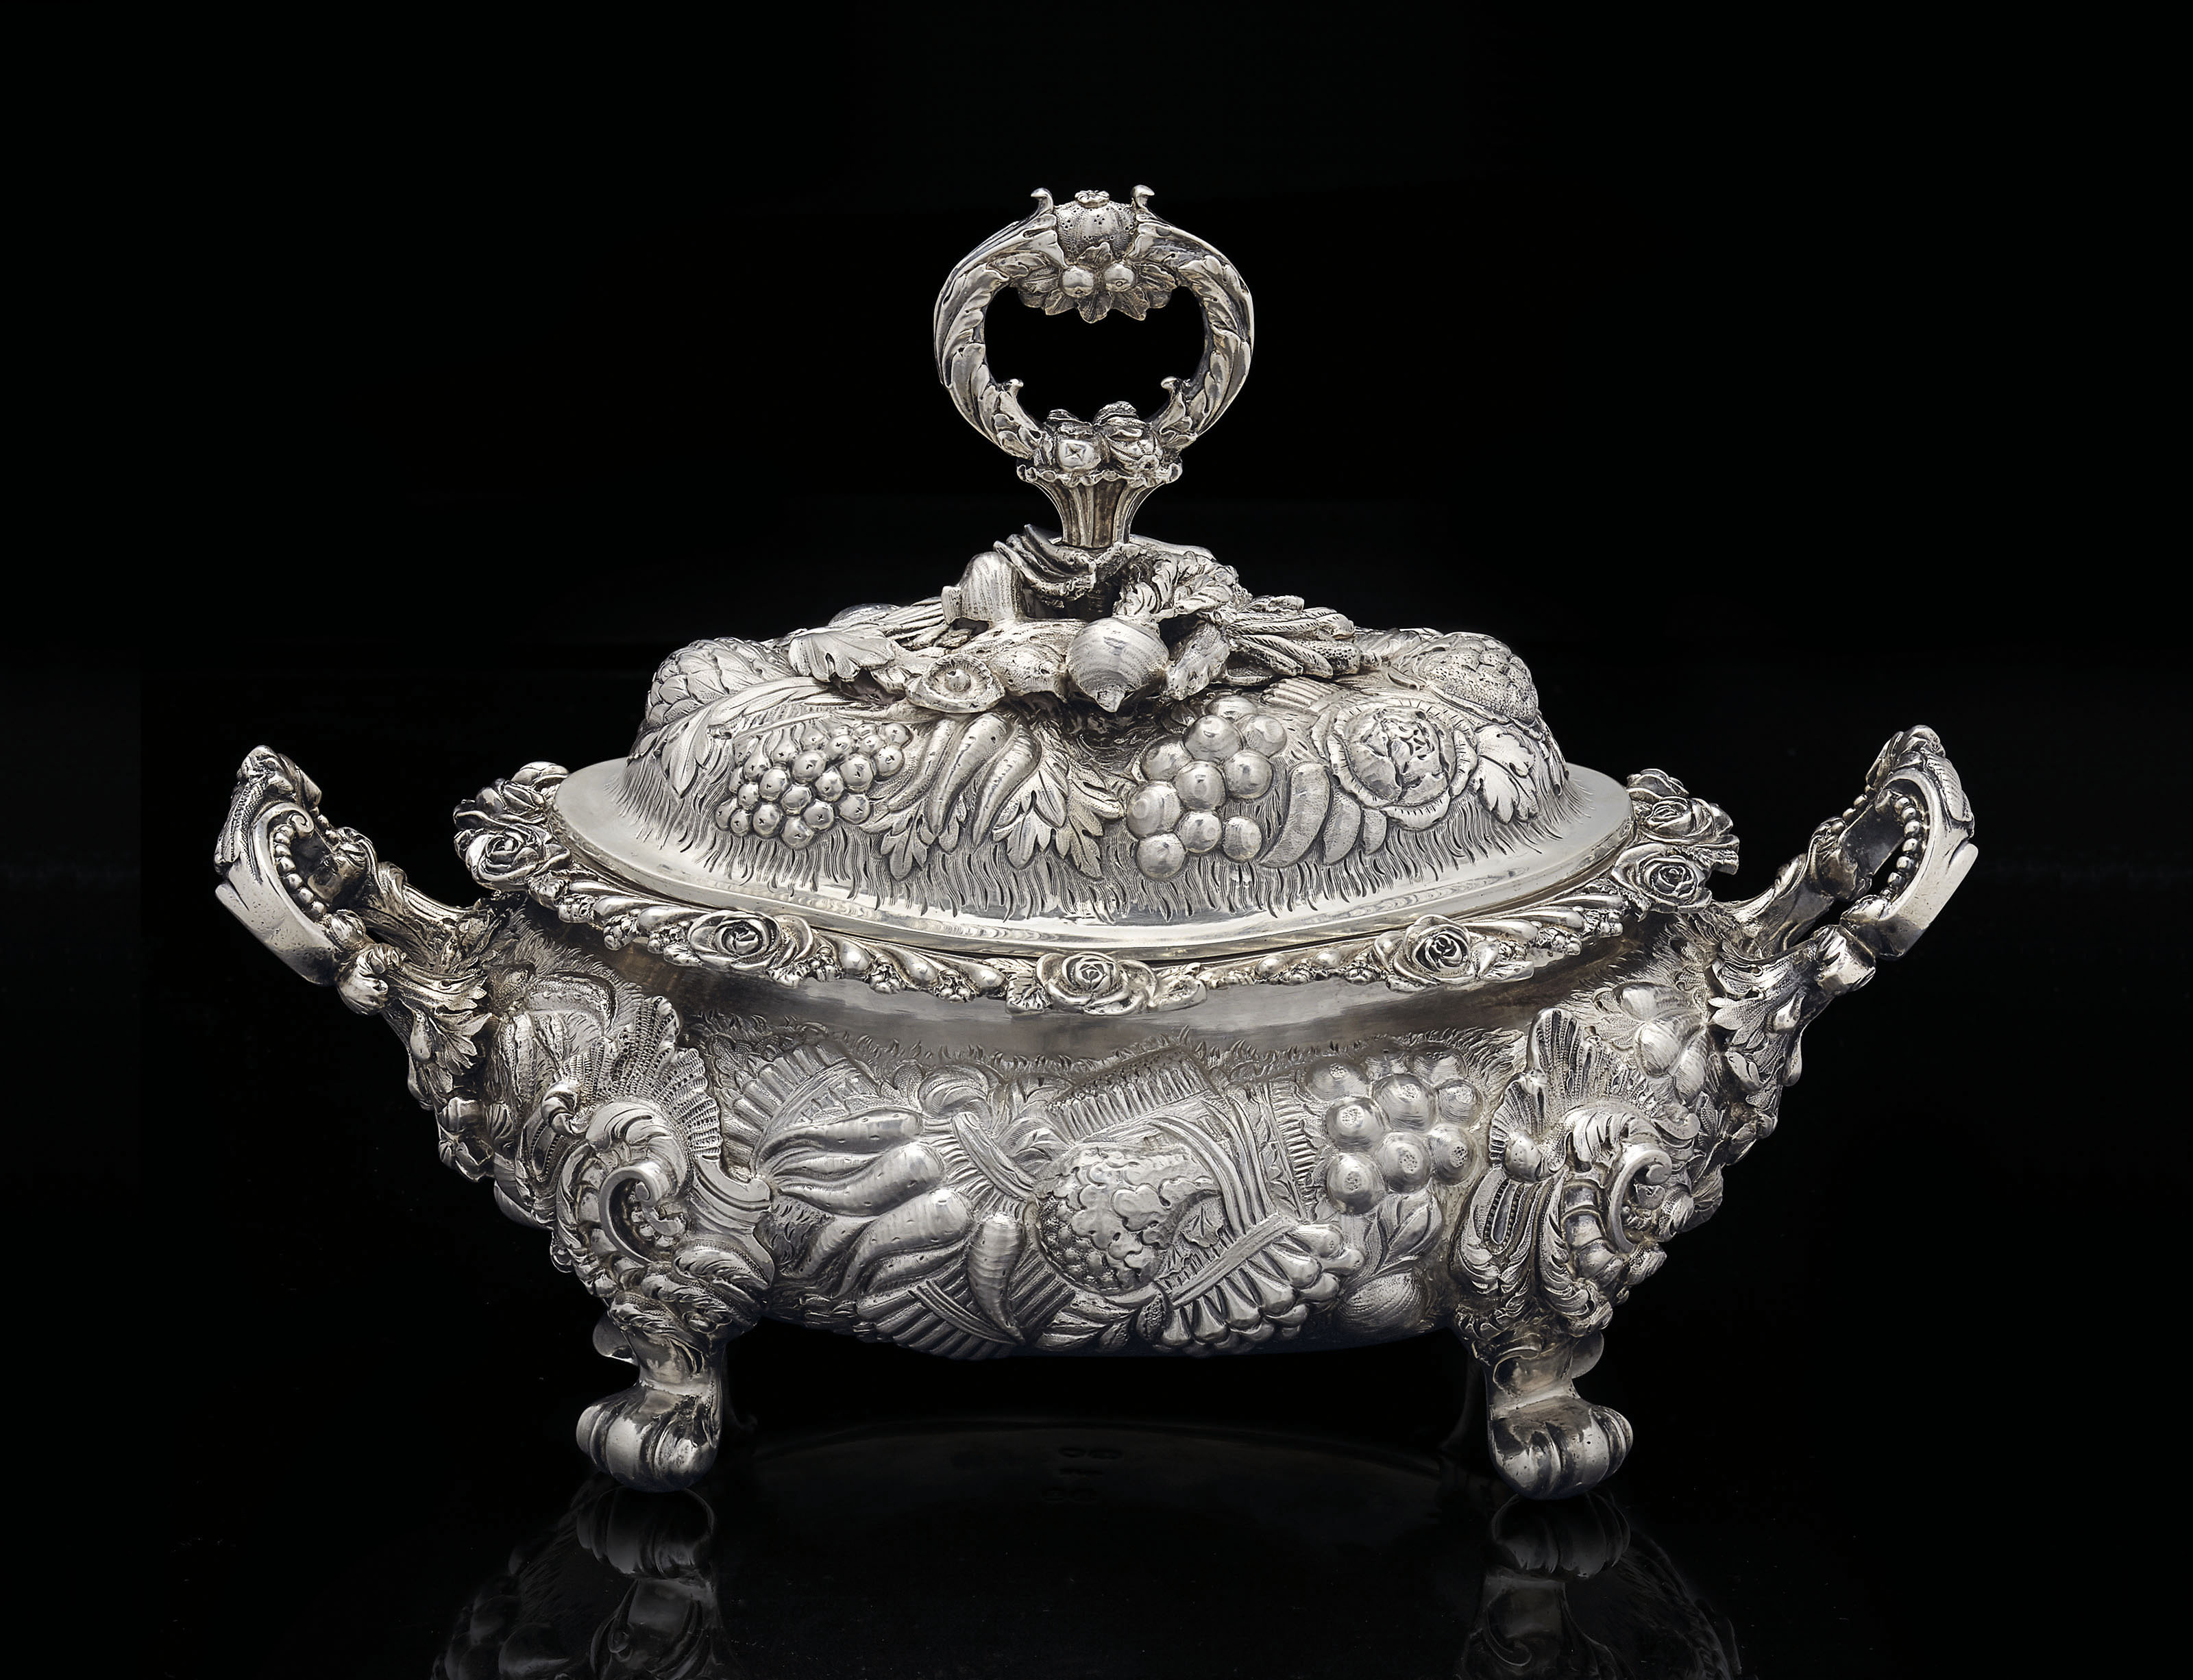 A GEORGE IV SILVER SAUCE-TUREEN AND COVER FROM THE DUKE OF YORK SERVICE